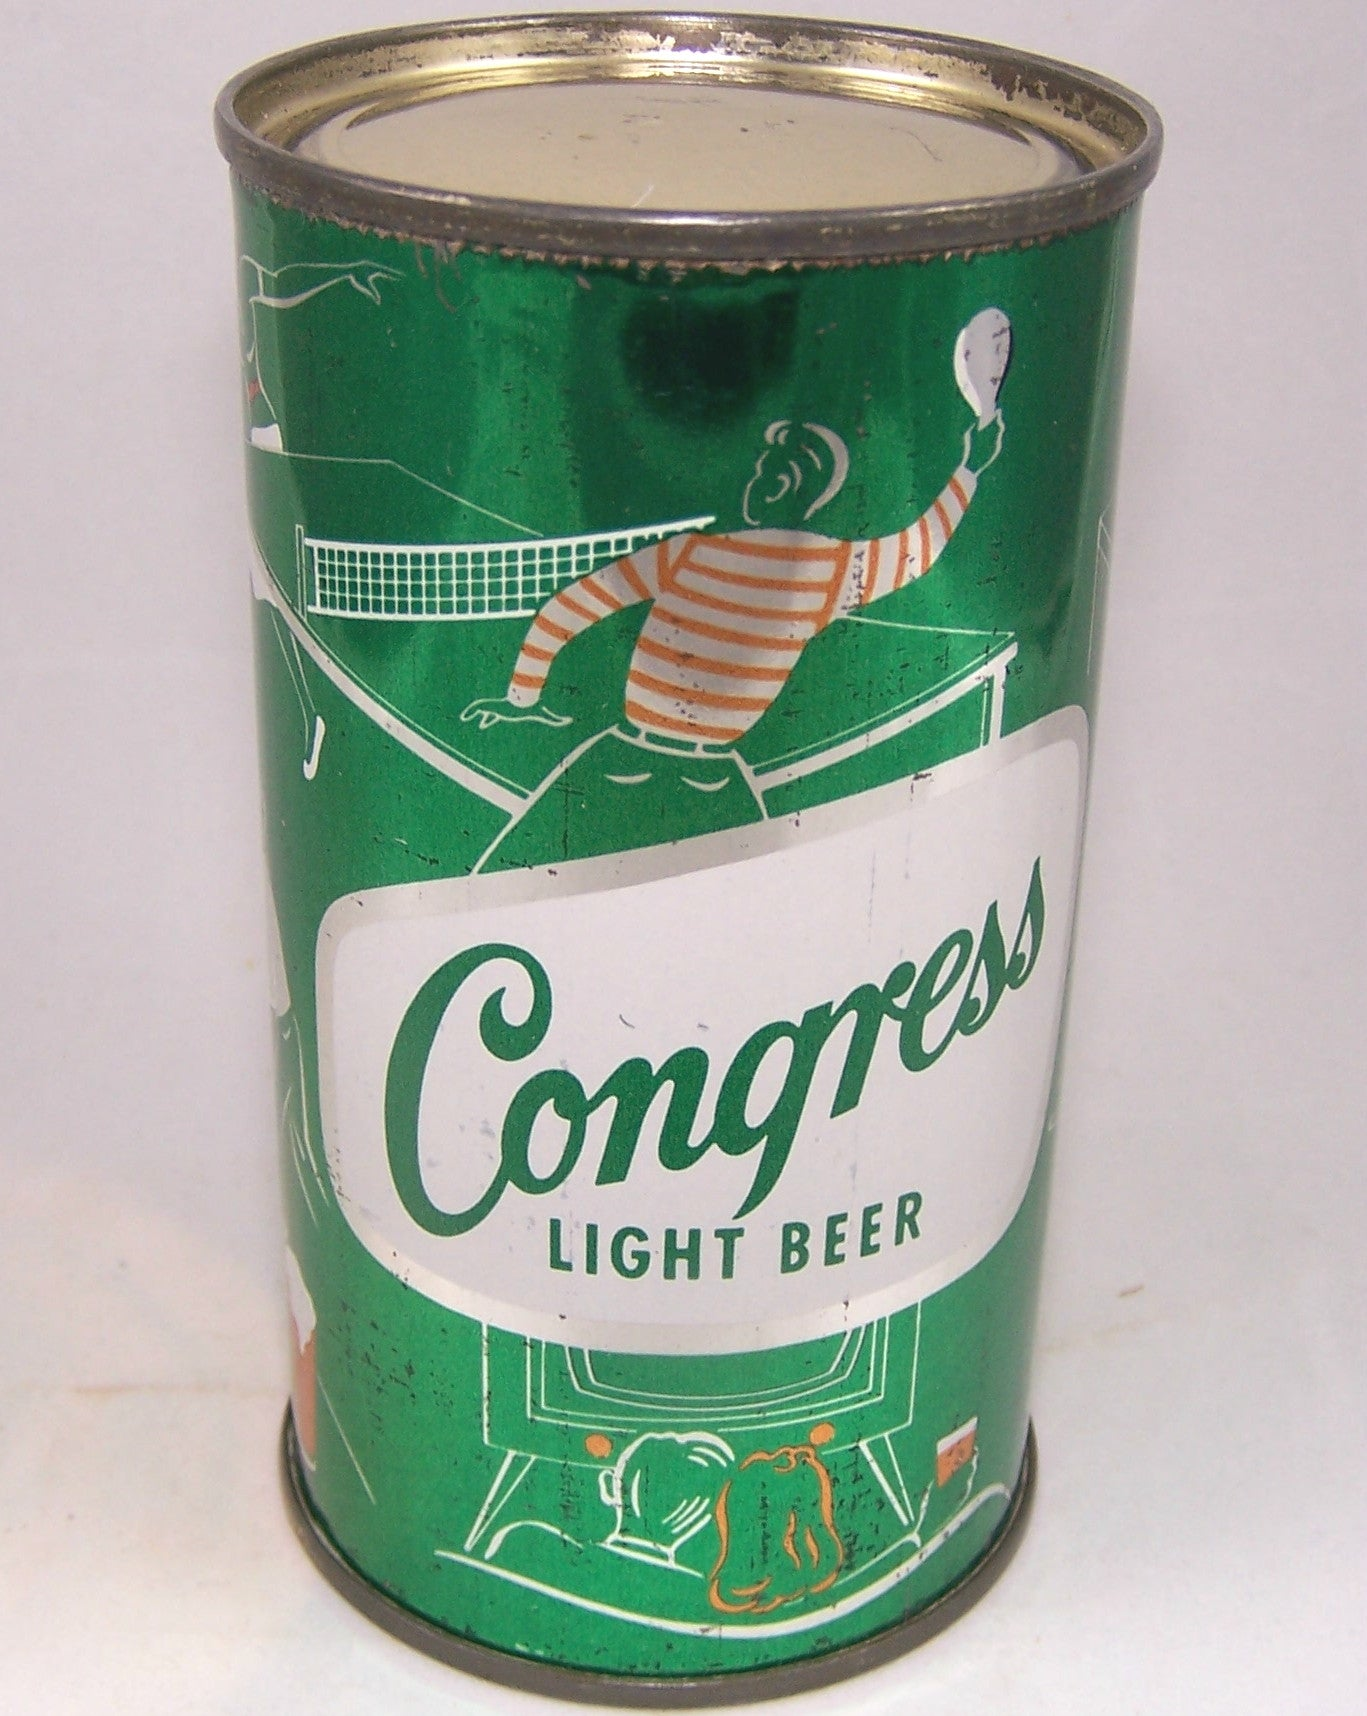 Congress Light Beer, (Table Tennis) USBC 50-36, Grade 1/1-